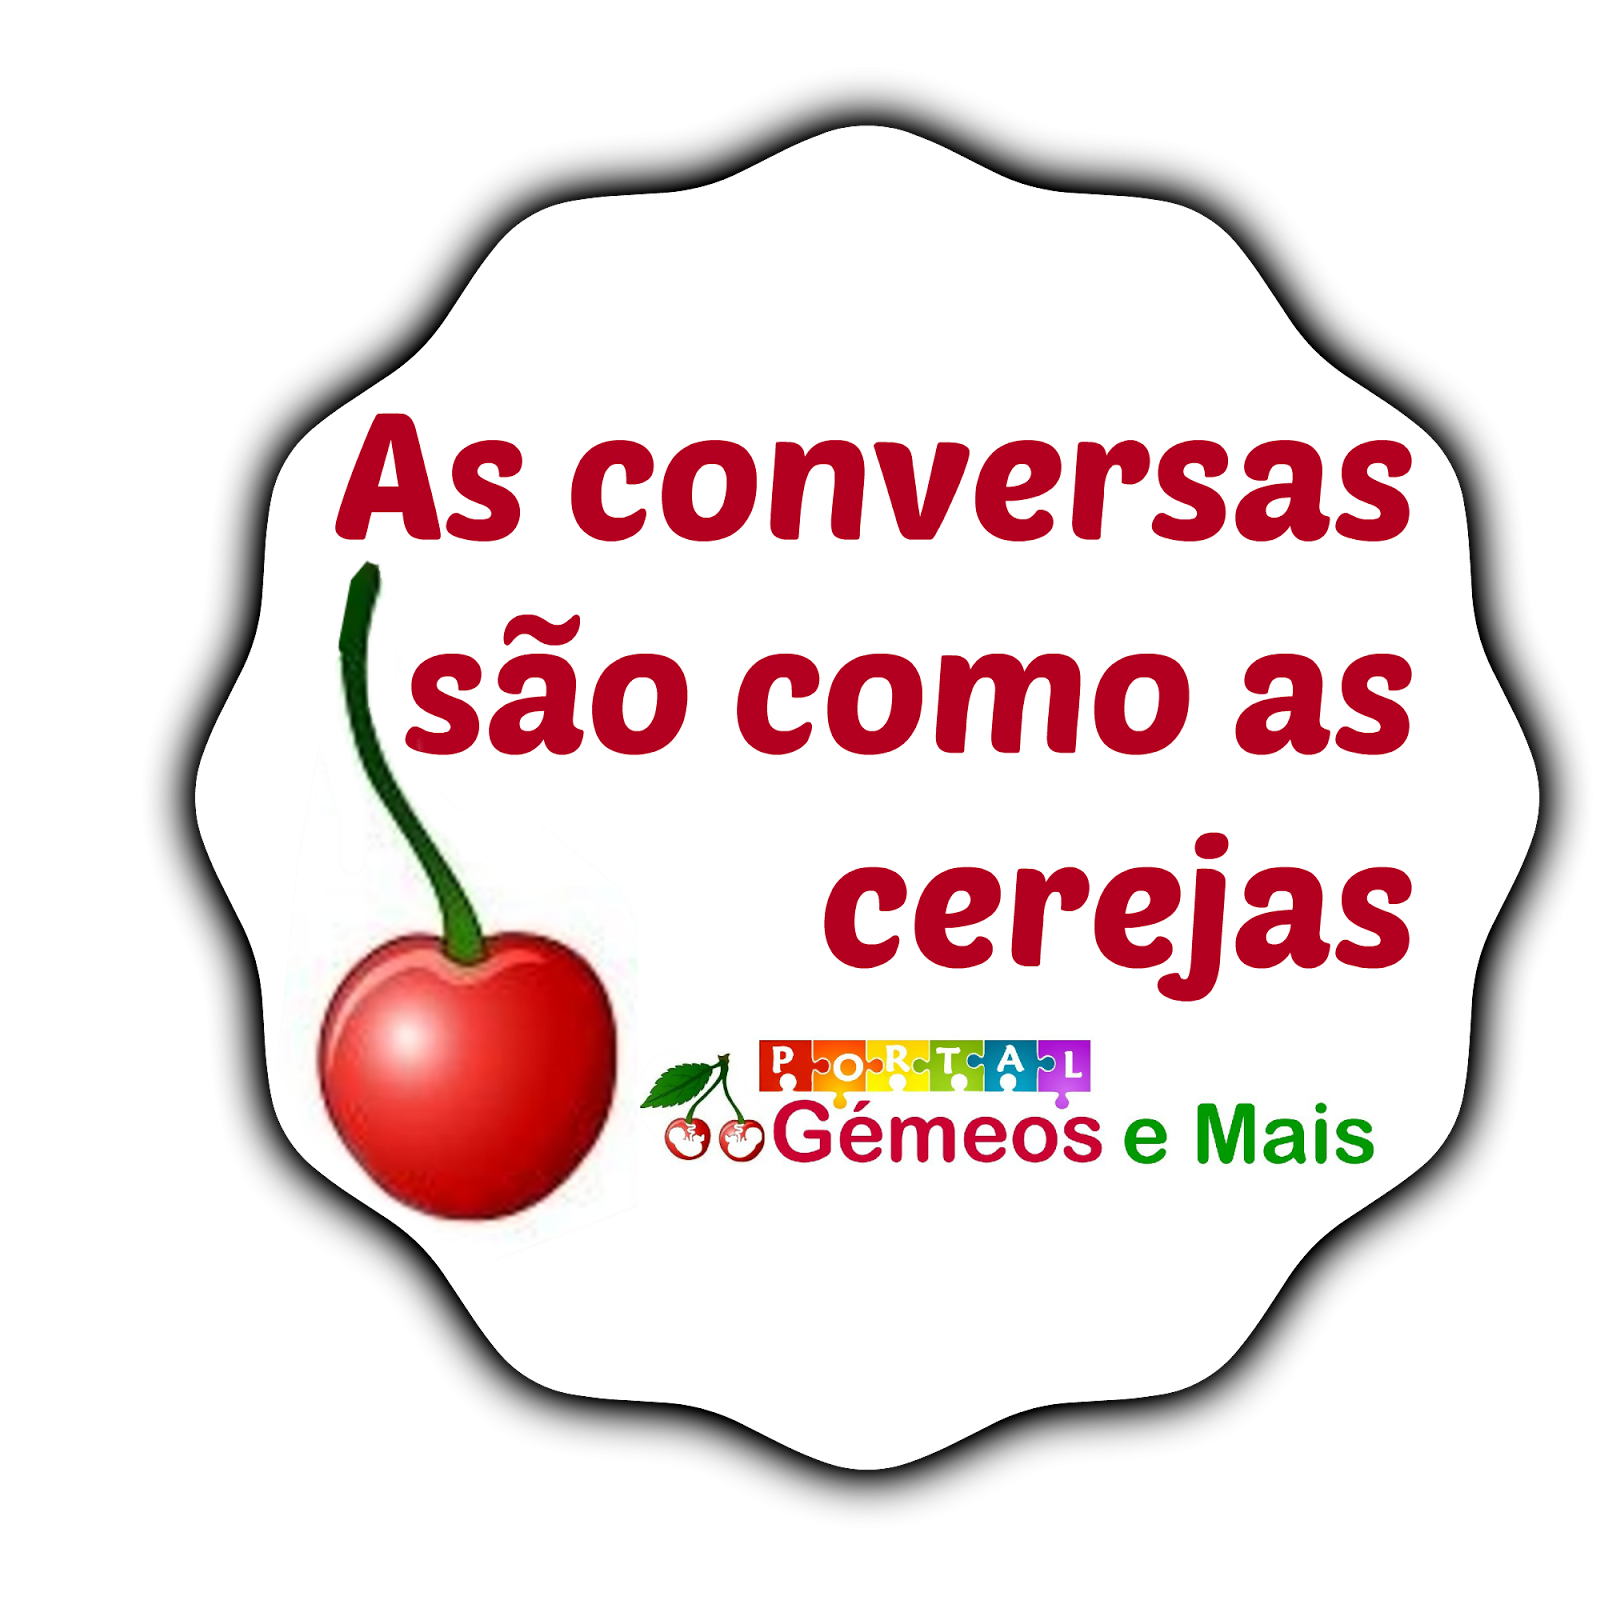 http://www.gemeosemais.com/search/label/Rita%20Cardoso